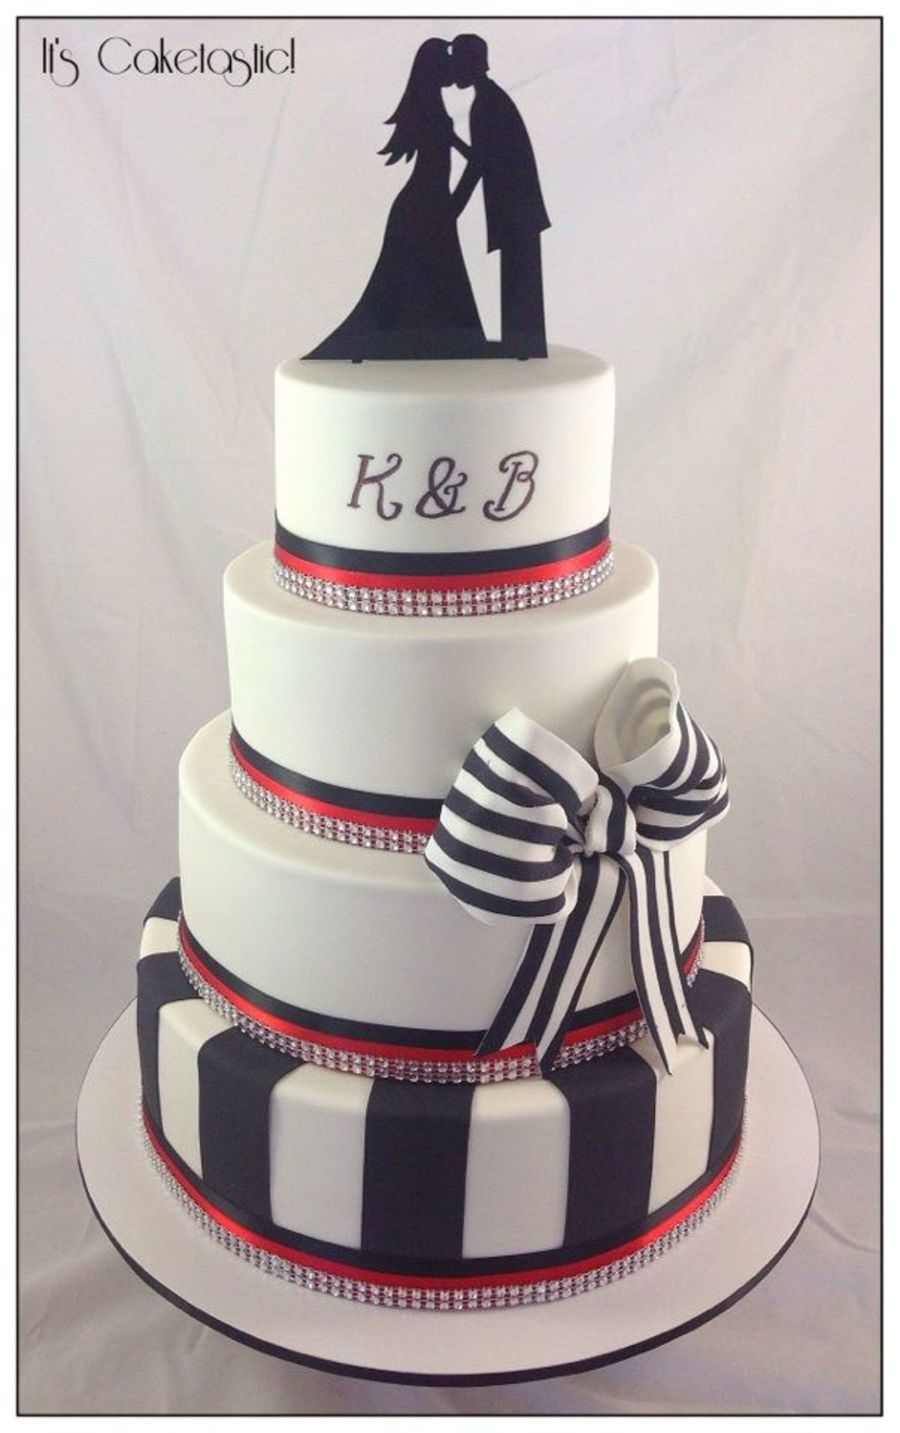 black white and red wedding cake. Black Bedroom Furniture Sets. Home Design Ideas